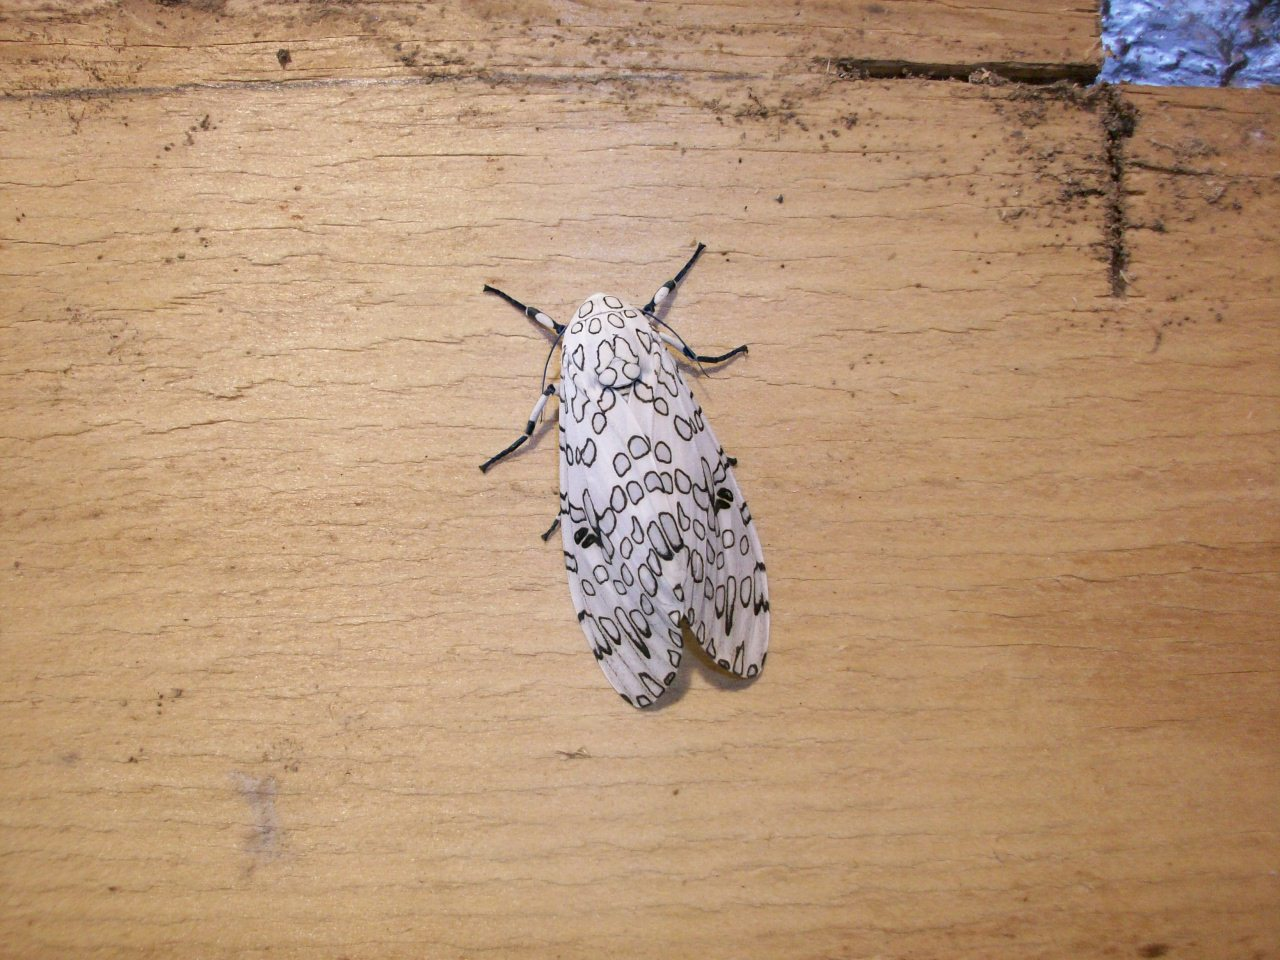 Giant leopard moth by /u/Toblerone44 on Reddit